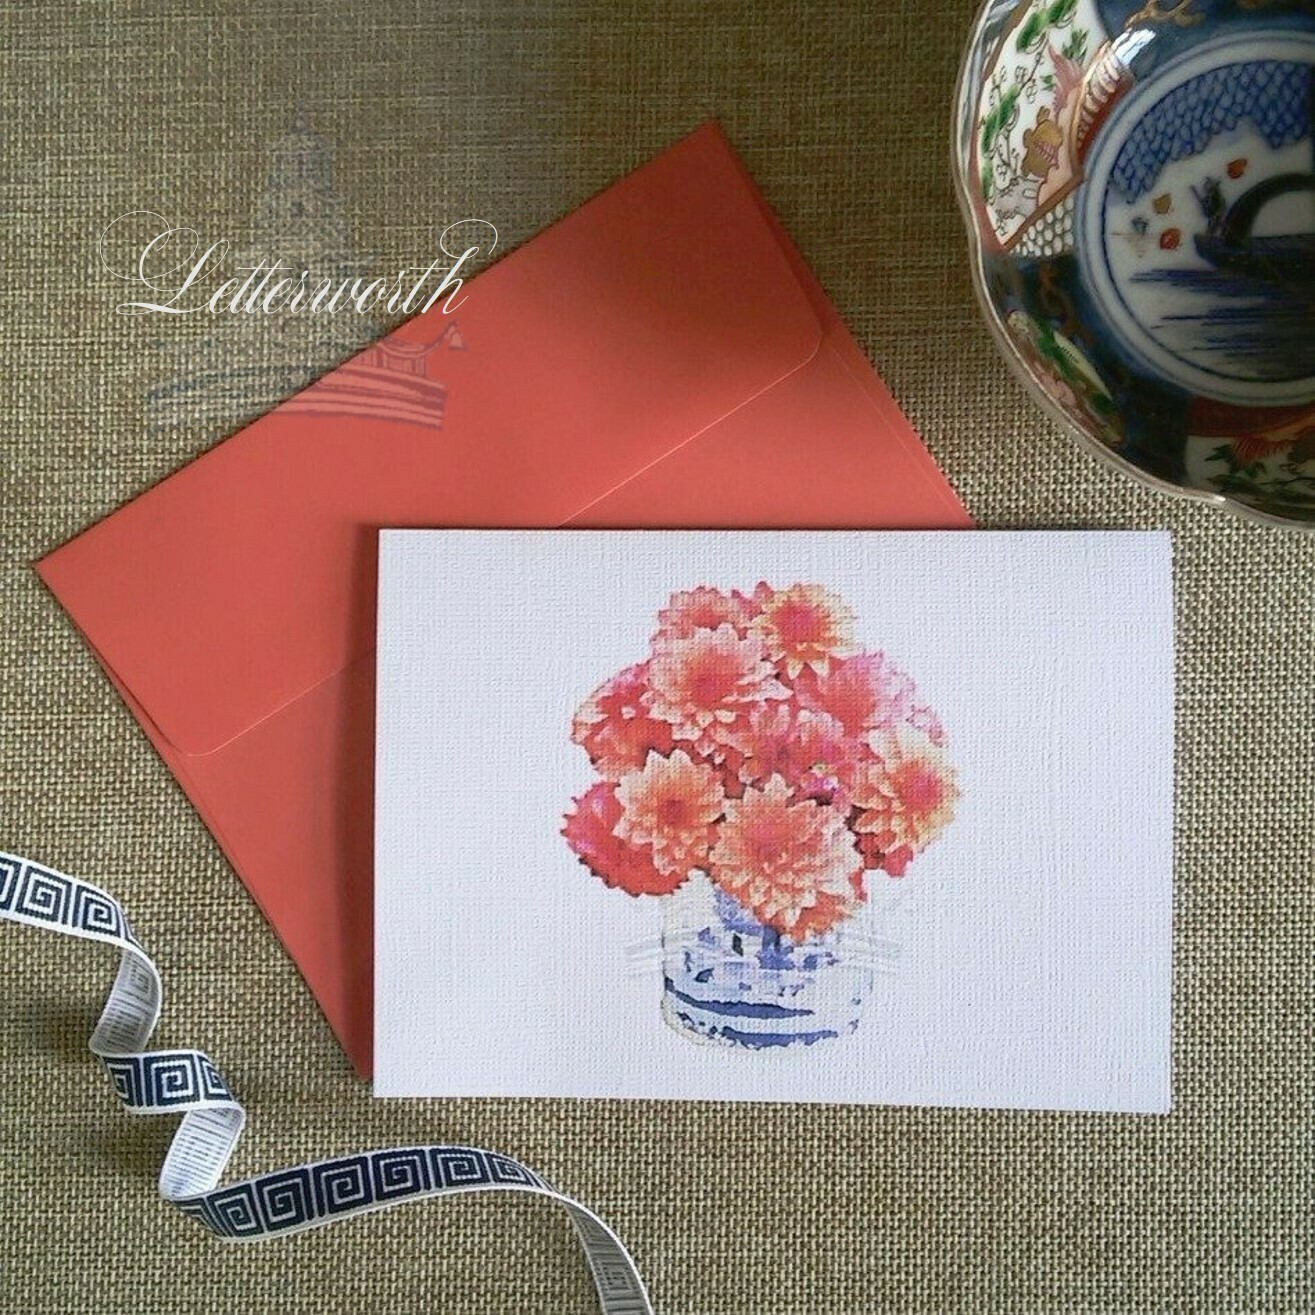 Dahlias in Blue and White Chinoiserie Cachepot Watercolor Note Cards by Letterworth (Set of 8)